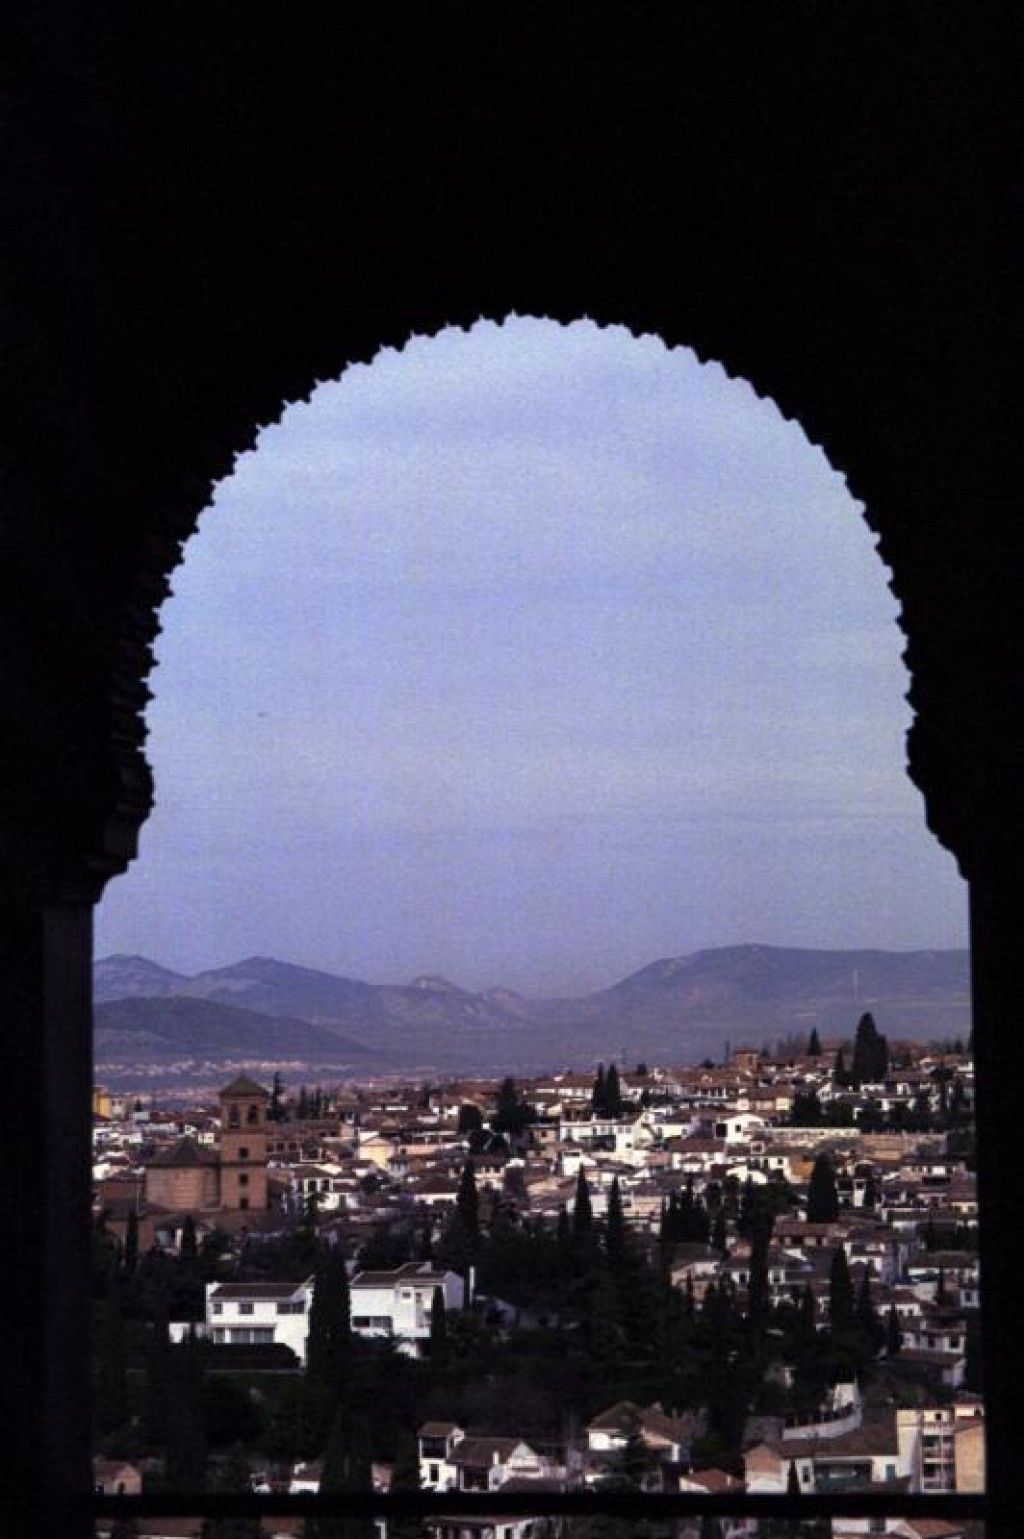 Here is a view looking over Granada, from one of the buildings.